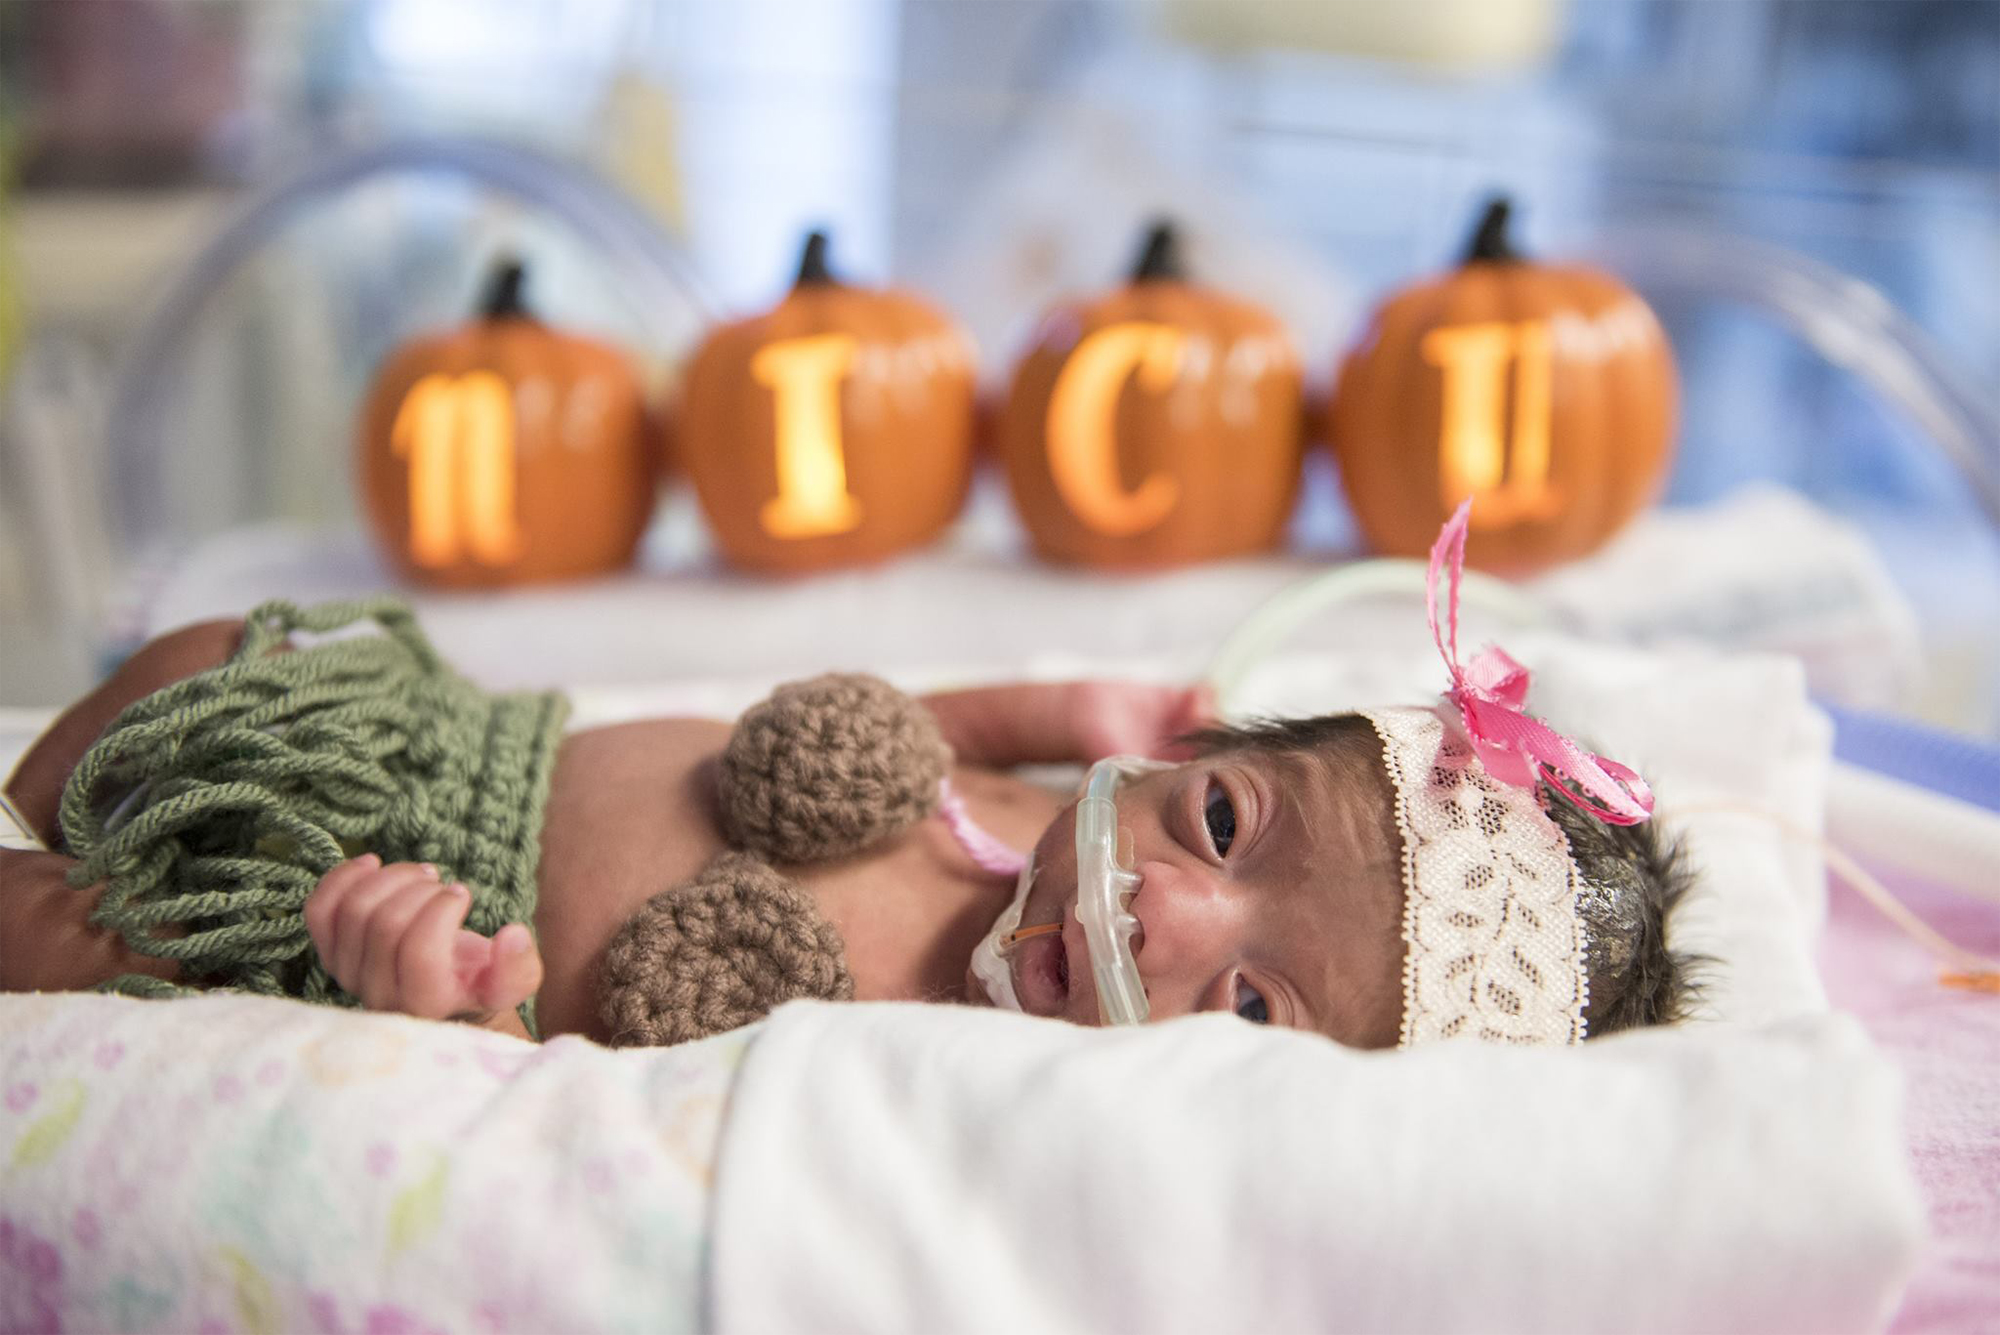 Henry Ford Health System NICU Babies 1